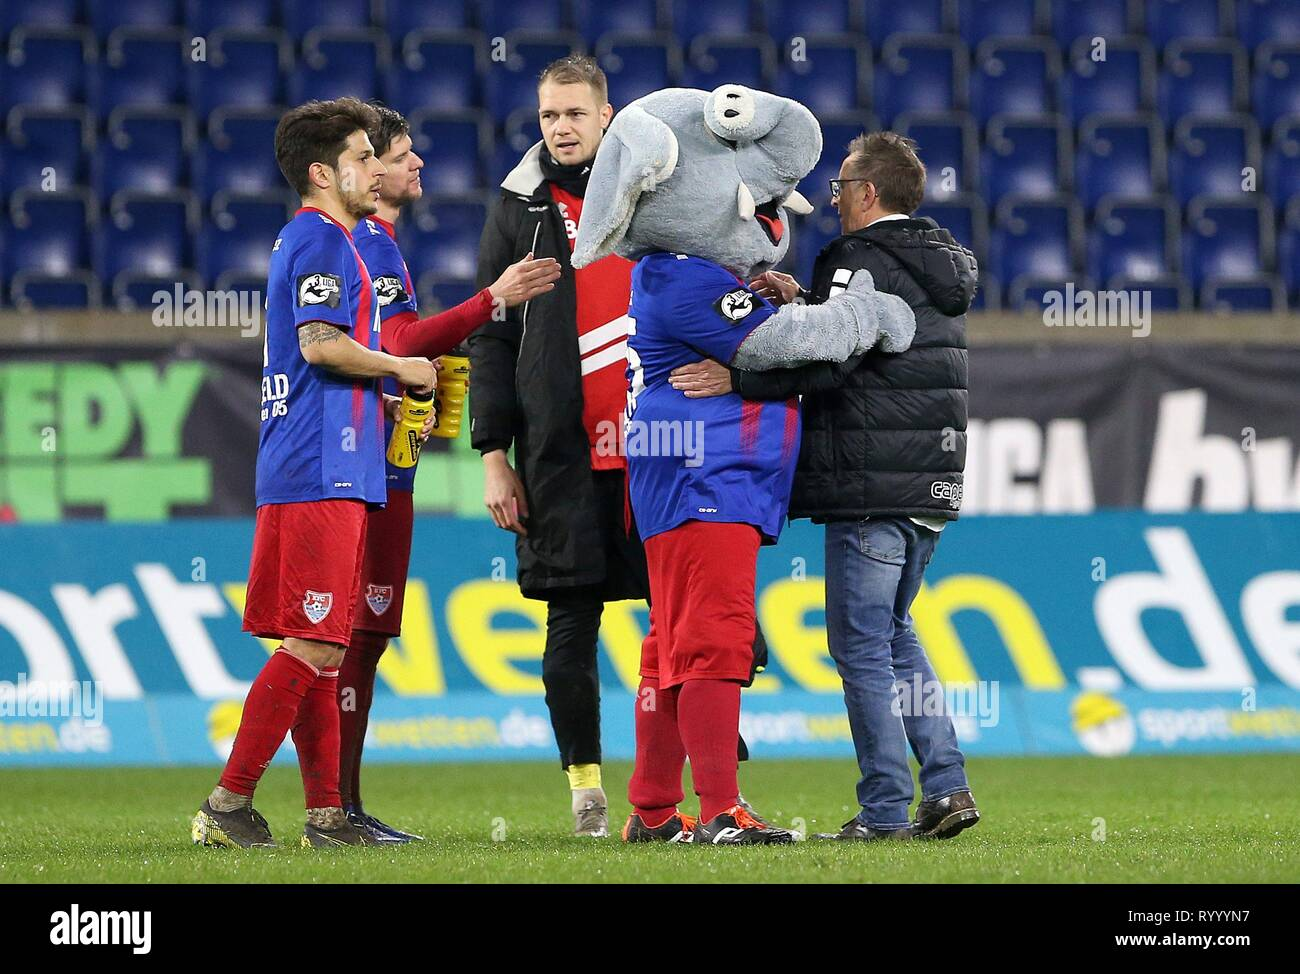 Duisburg, Deutschland. 15th Mar, 2019. firo: 15.03.2019 Football, 3. Bundesliga, season 2018/2019 KFC Uerdingen 05 - SC Fortuna Köln Mascot 'Grotifant' (KFC Uerdingen 05) congratulates coach Norbert Meier (#NM, KFC Uerdingen 05) for a point win. | usage worldwide Credit: dpa/Alamy Live News - Stock Image